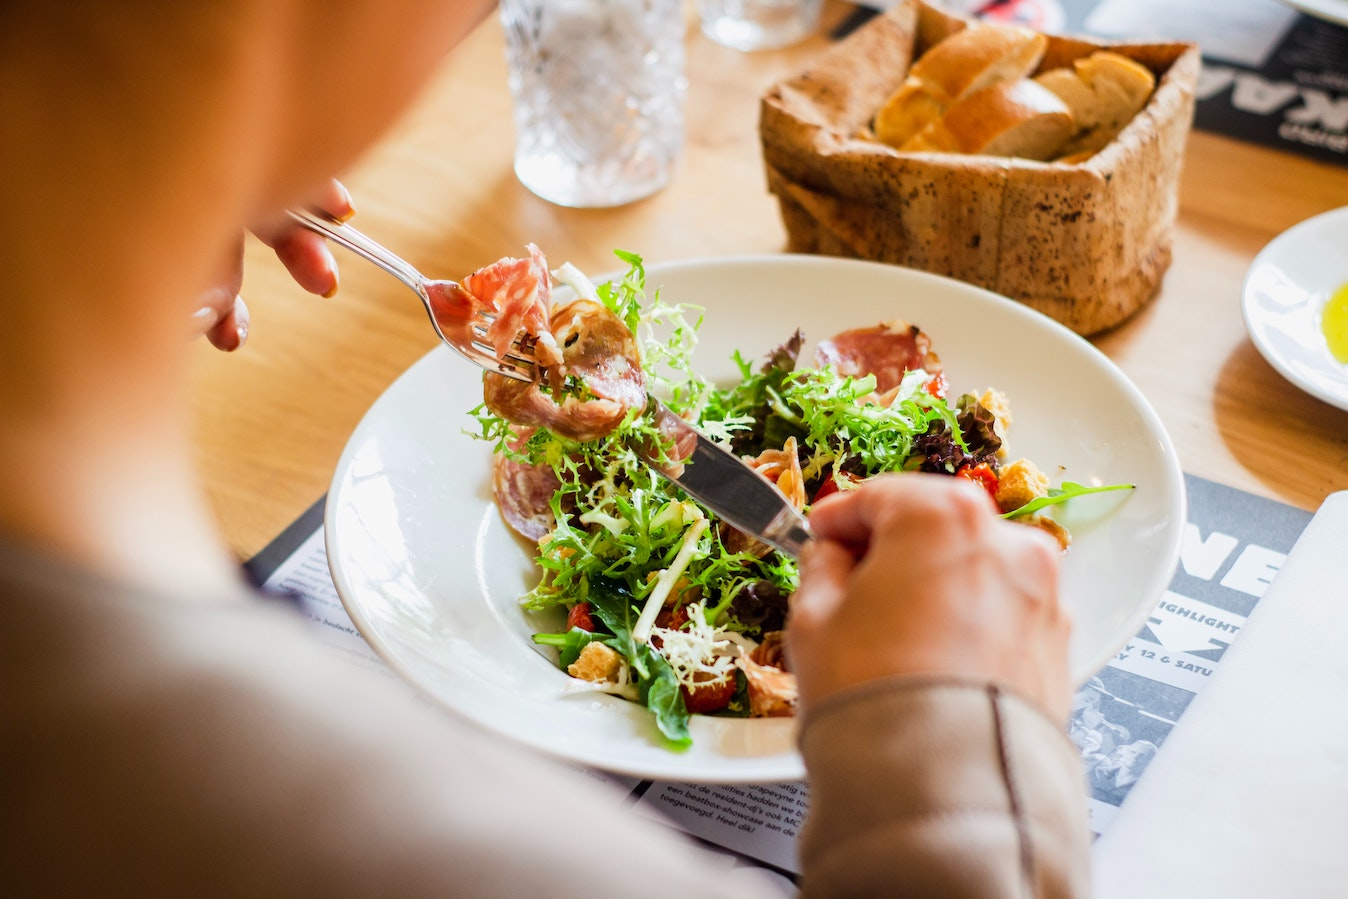 Person eating a salad